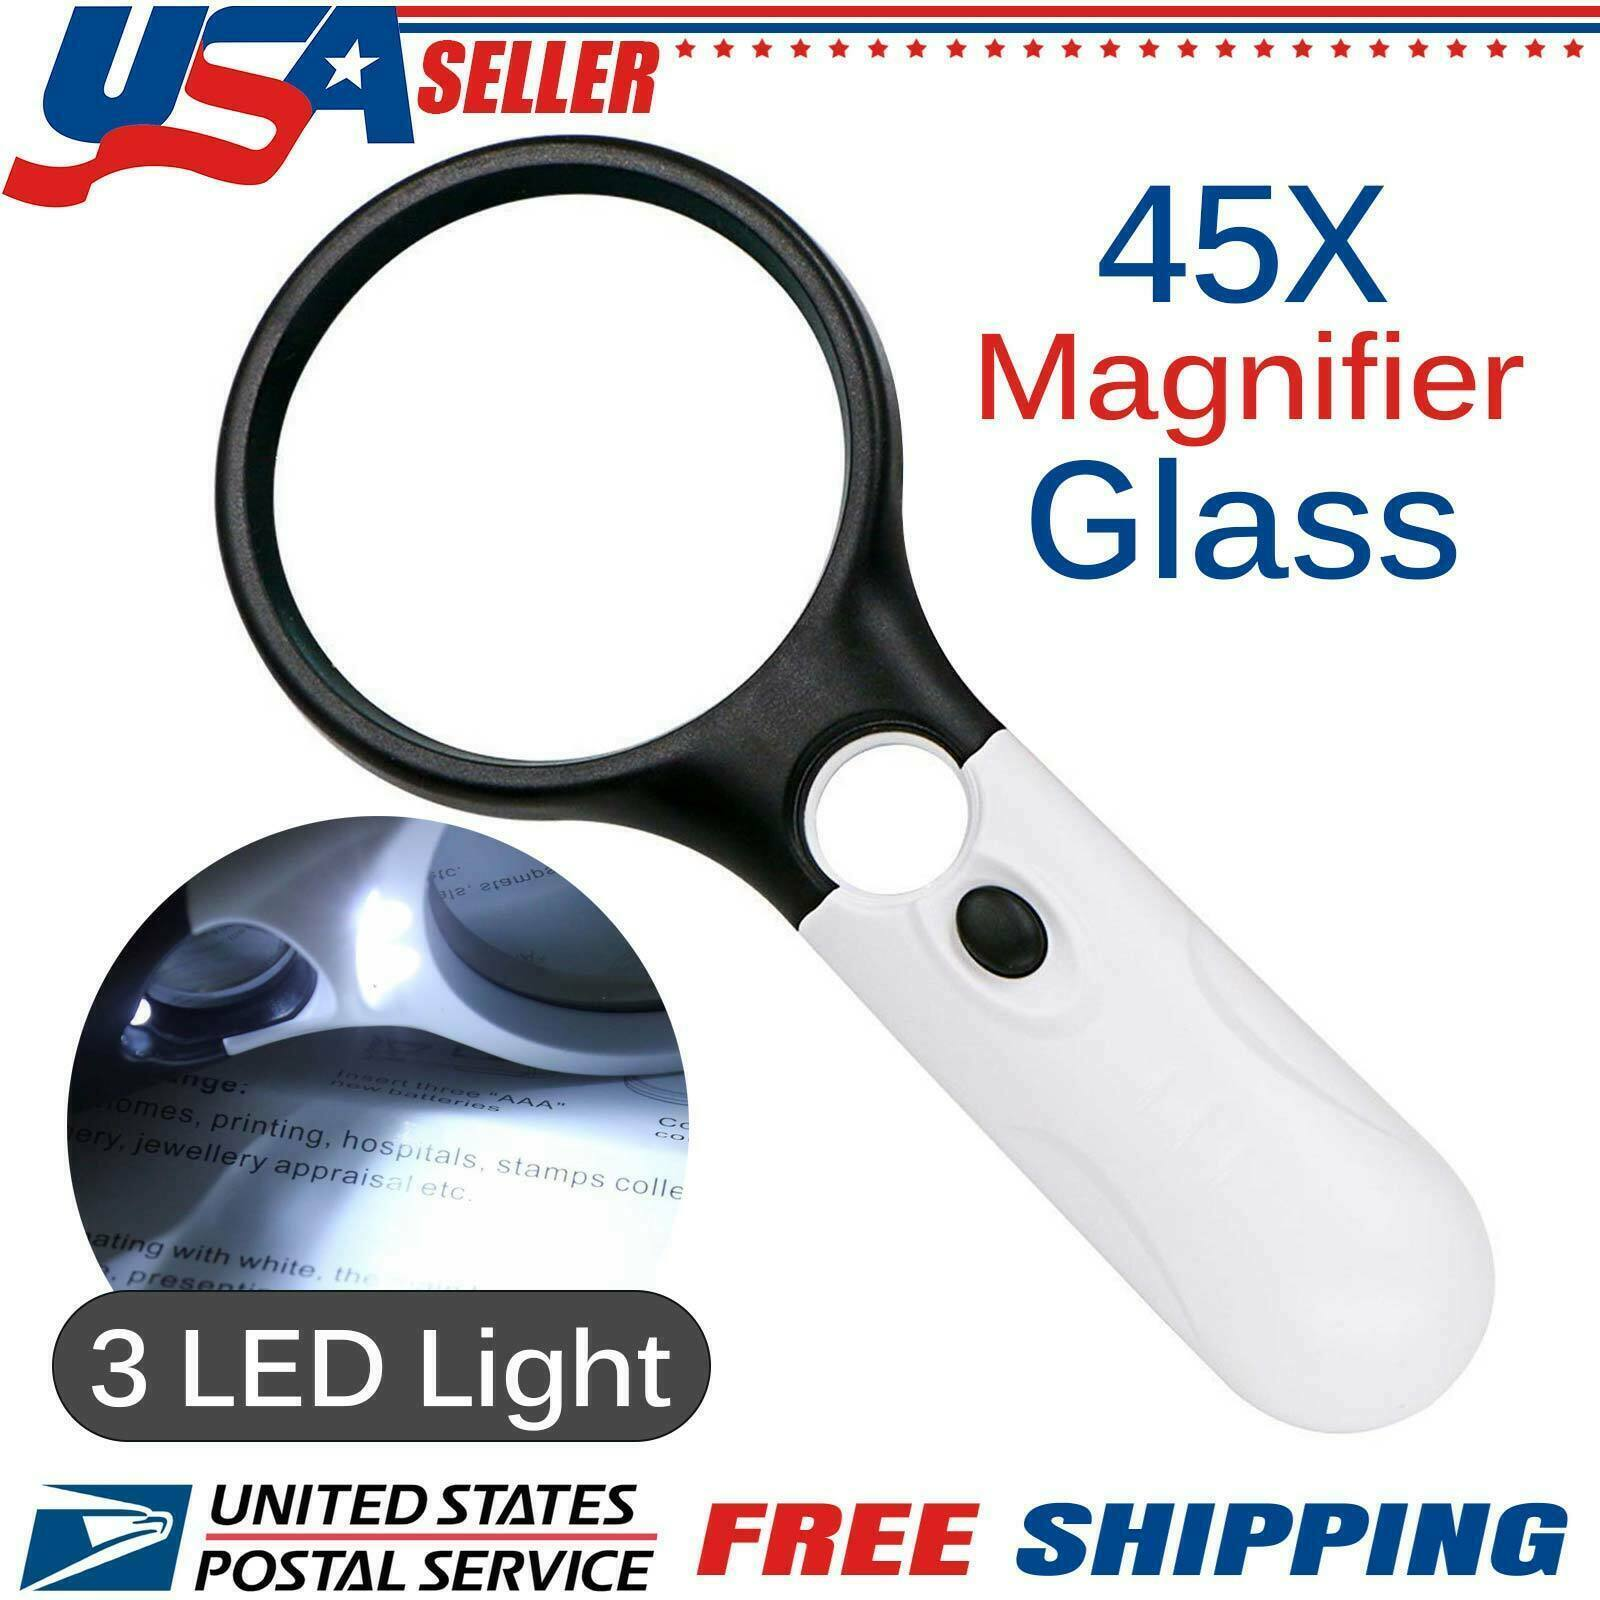 45X Handheld Magnifying Glass with 3 LED Light Magnifier Jewelry Loupe Lens Jewelry & Watches